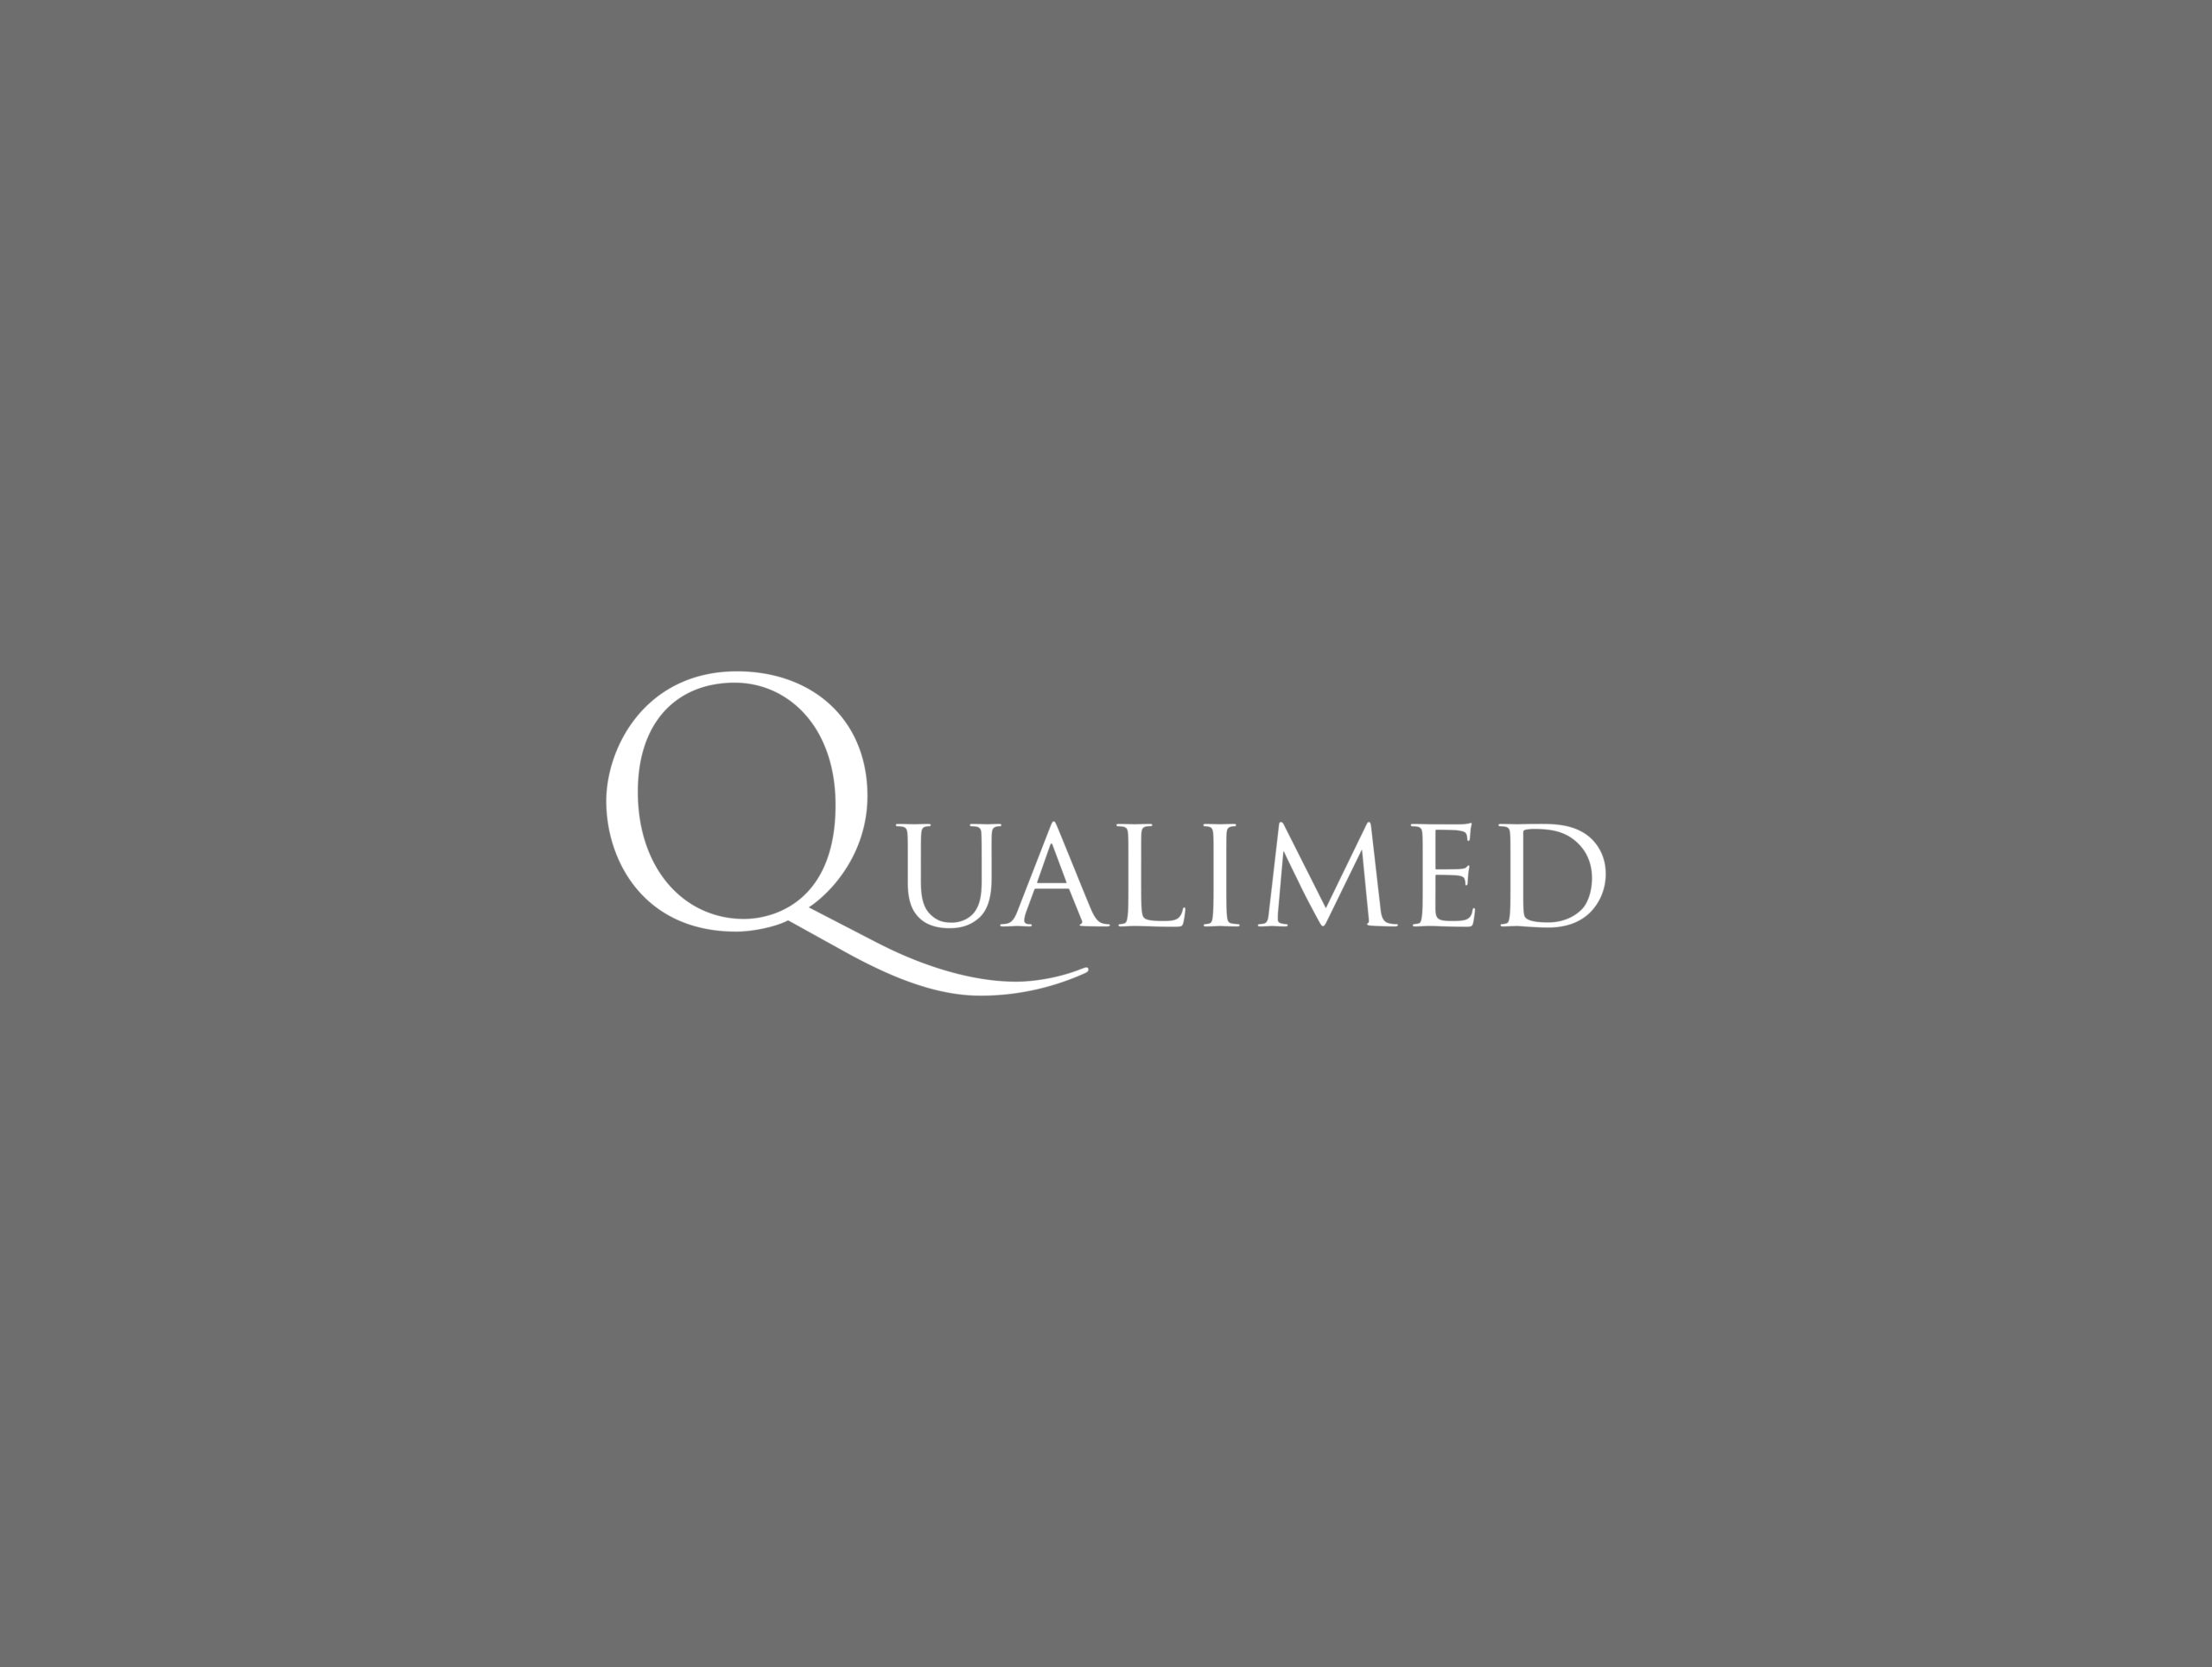 Qualimed, il partner ideale per lenti a contatto colorate